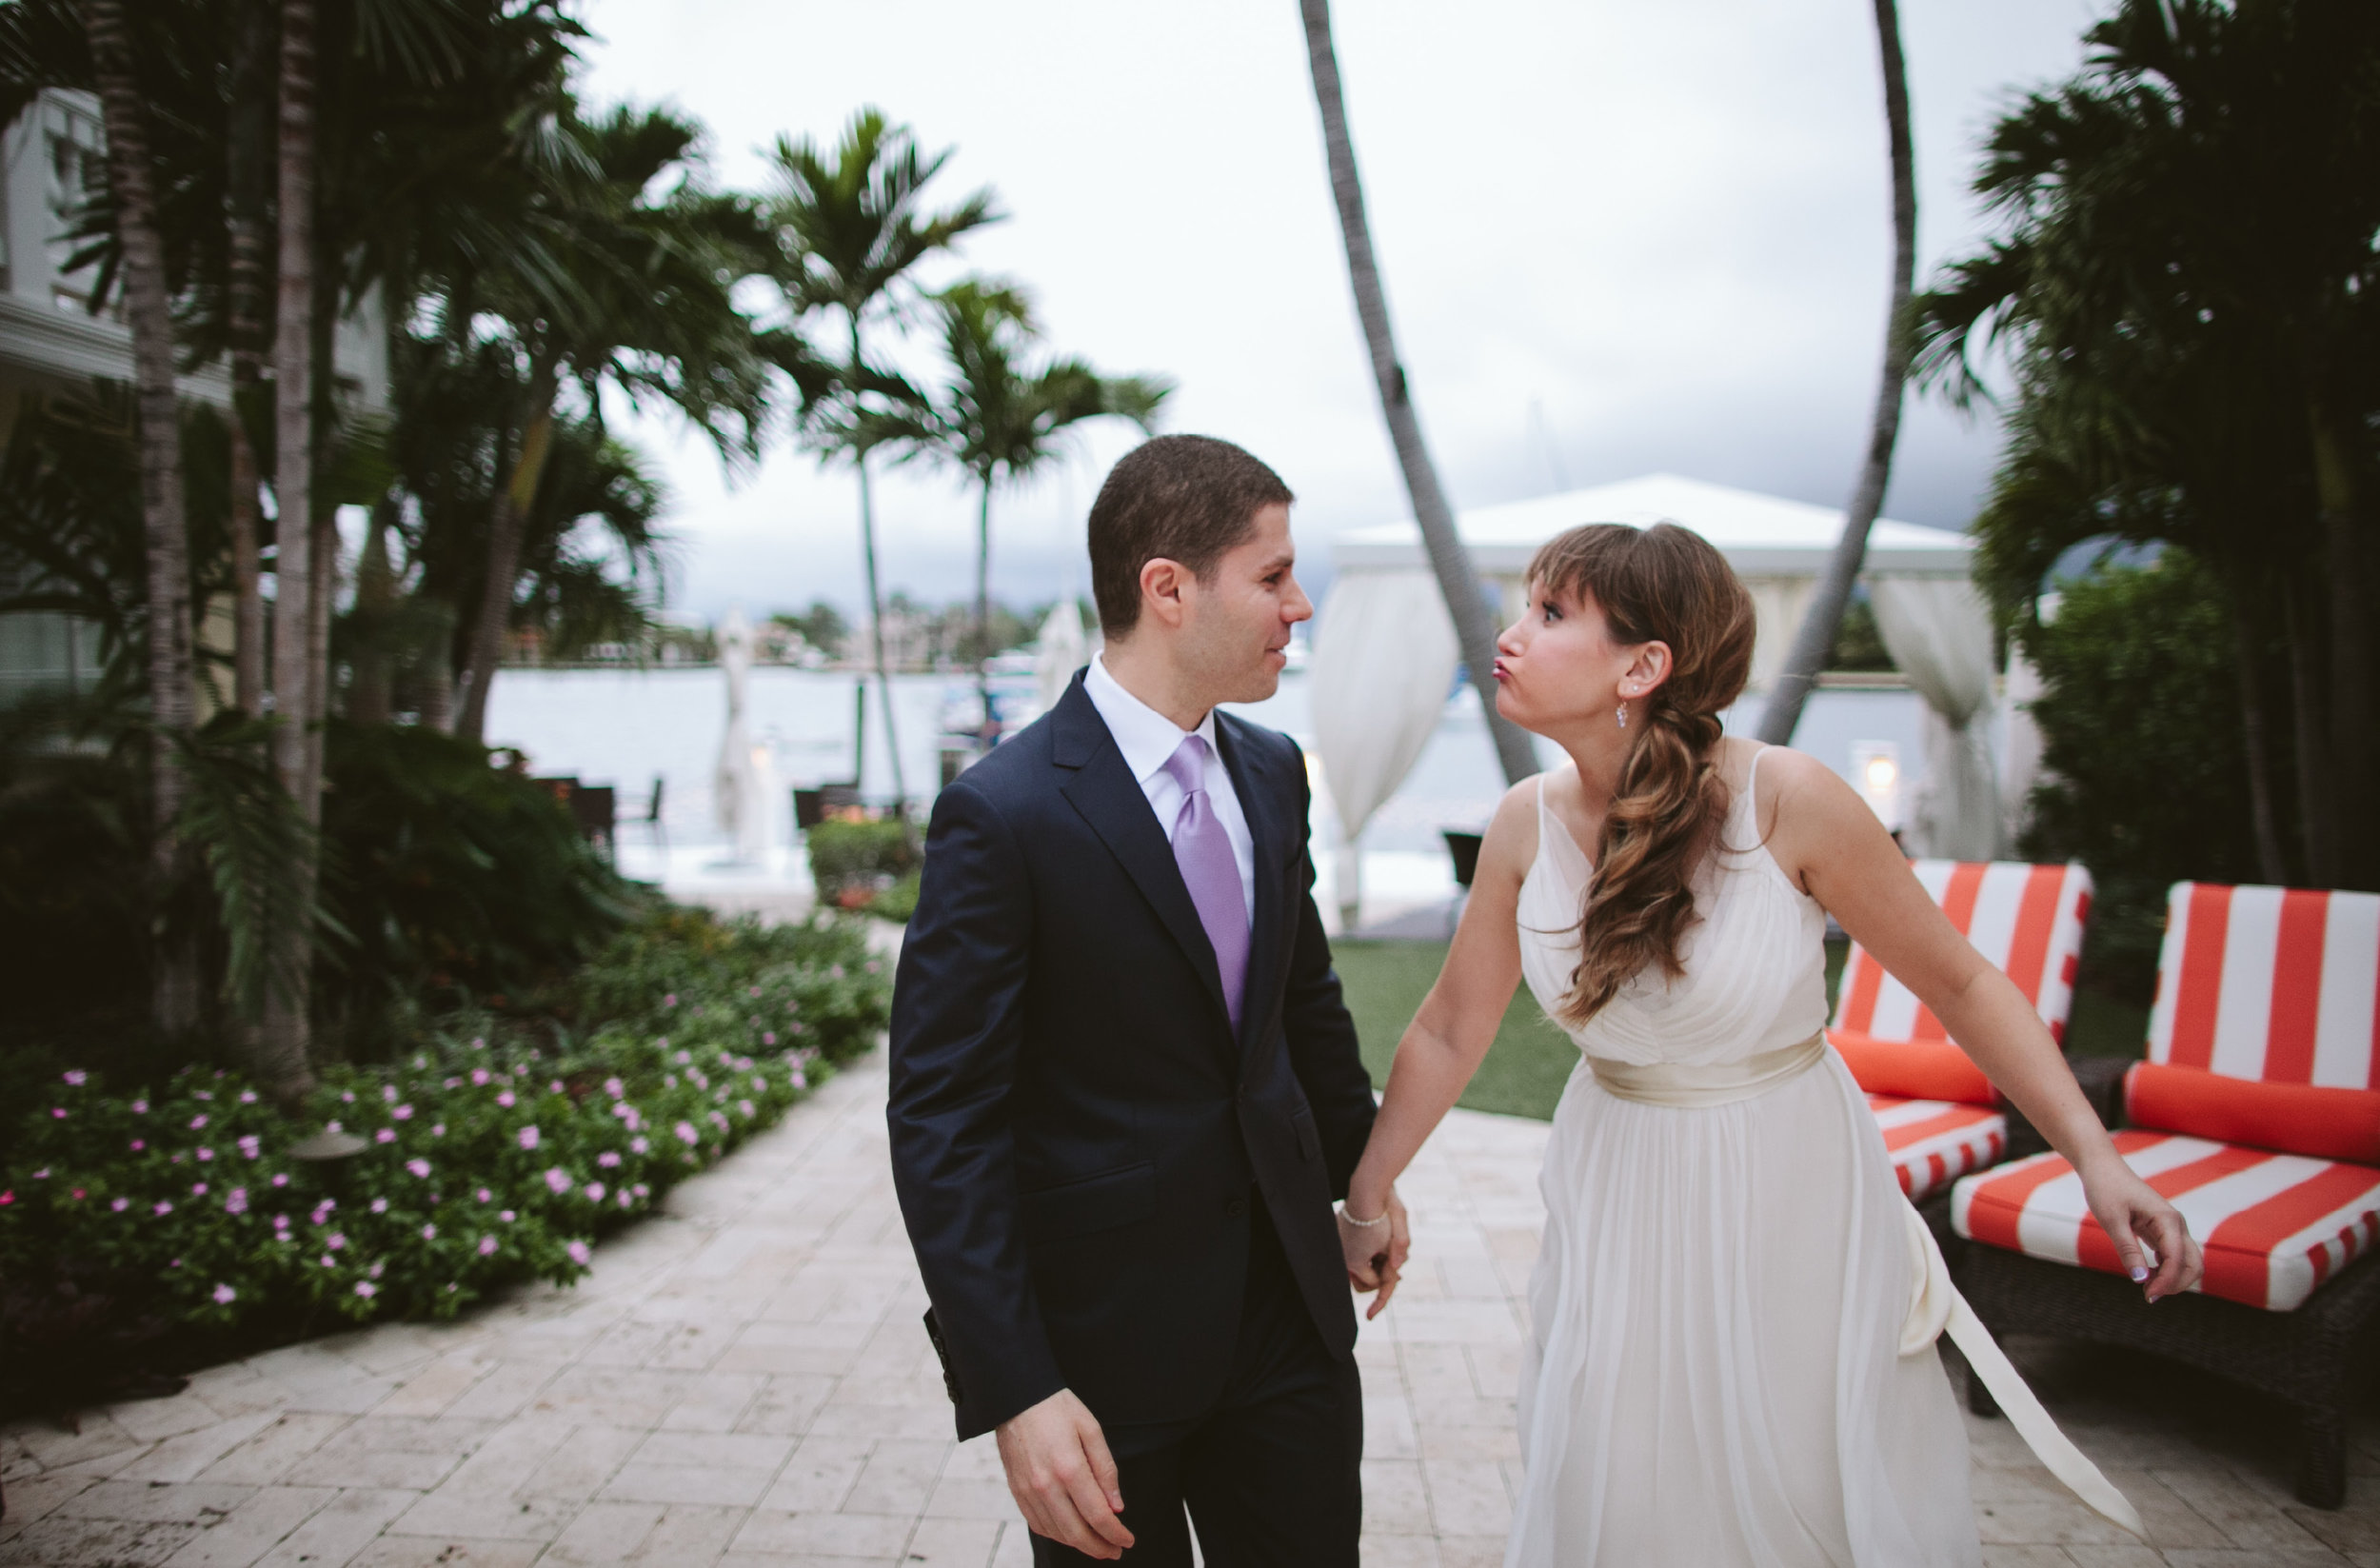 Laura + Vitaly's Intimate Ft Lauderdale Wedding at The Pillars Hotel6.jpg